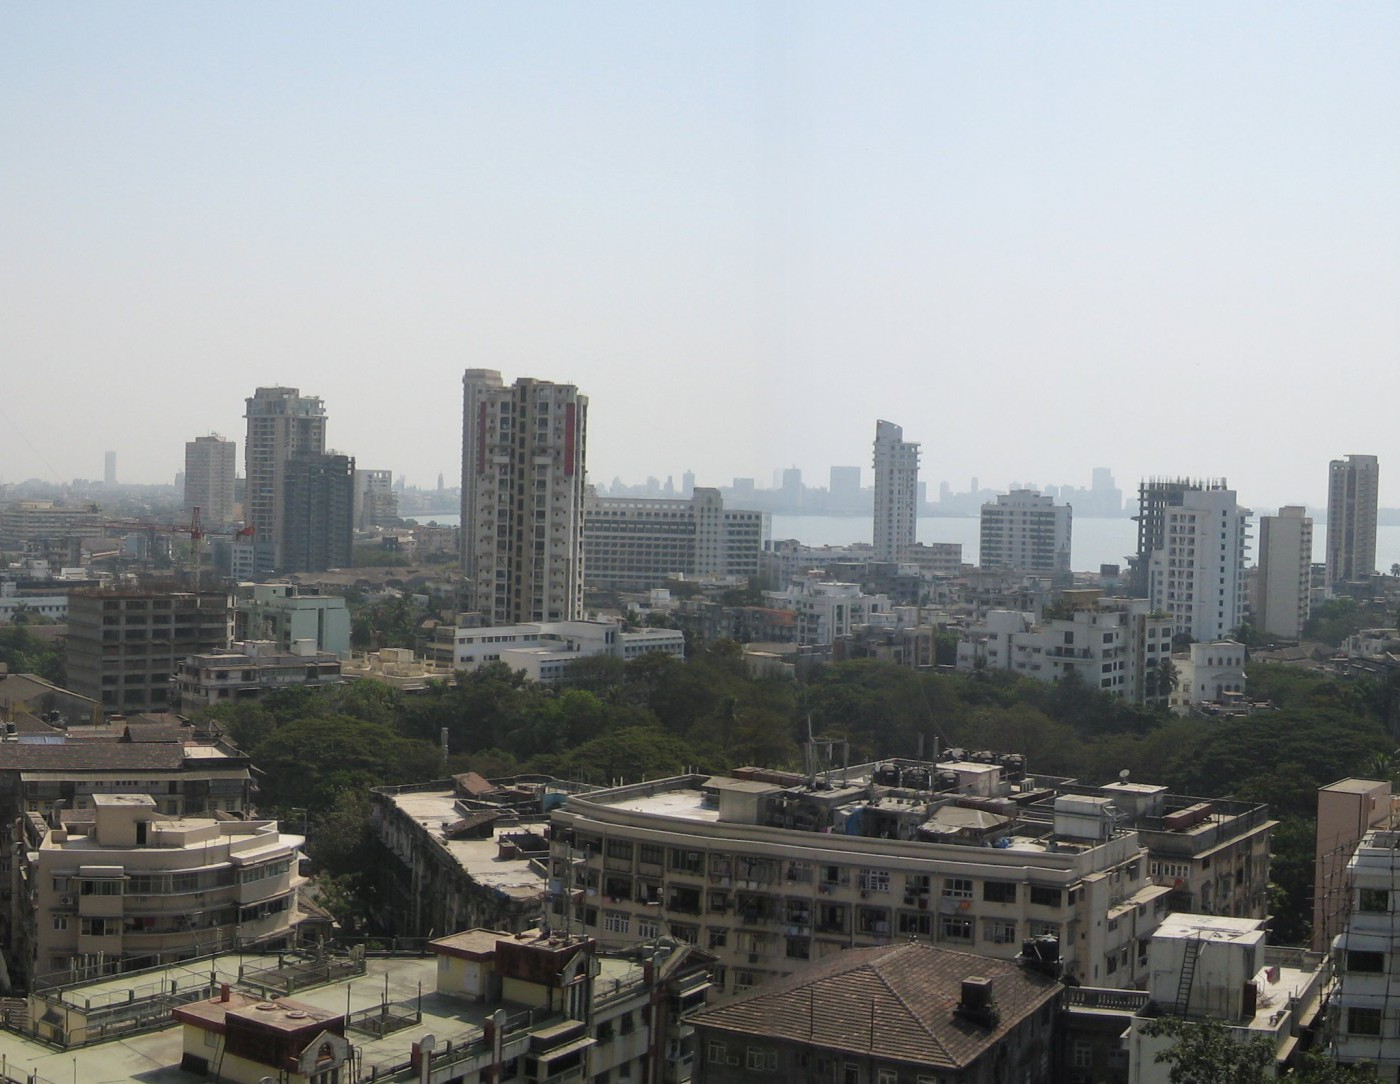 Decline of Rental Housing in India